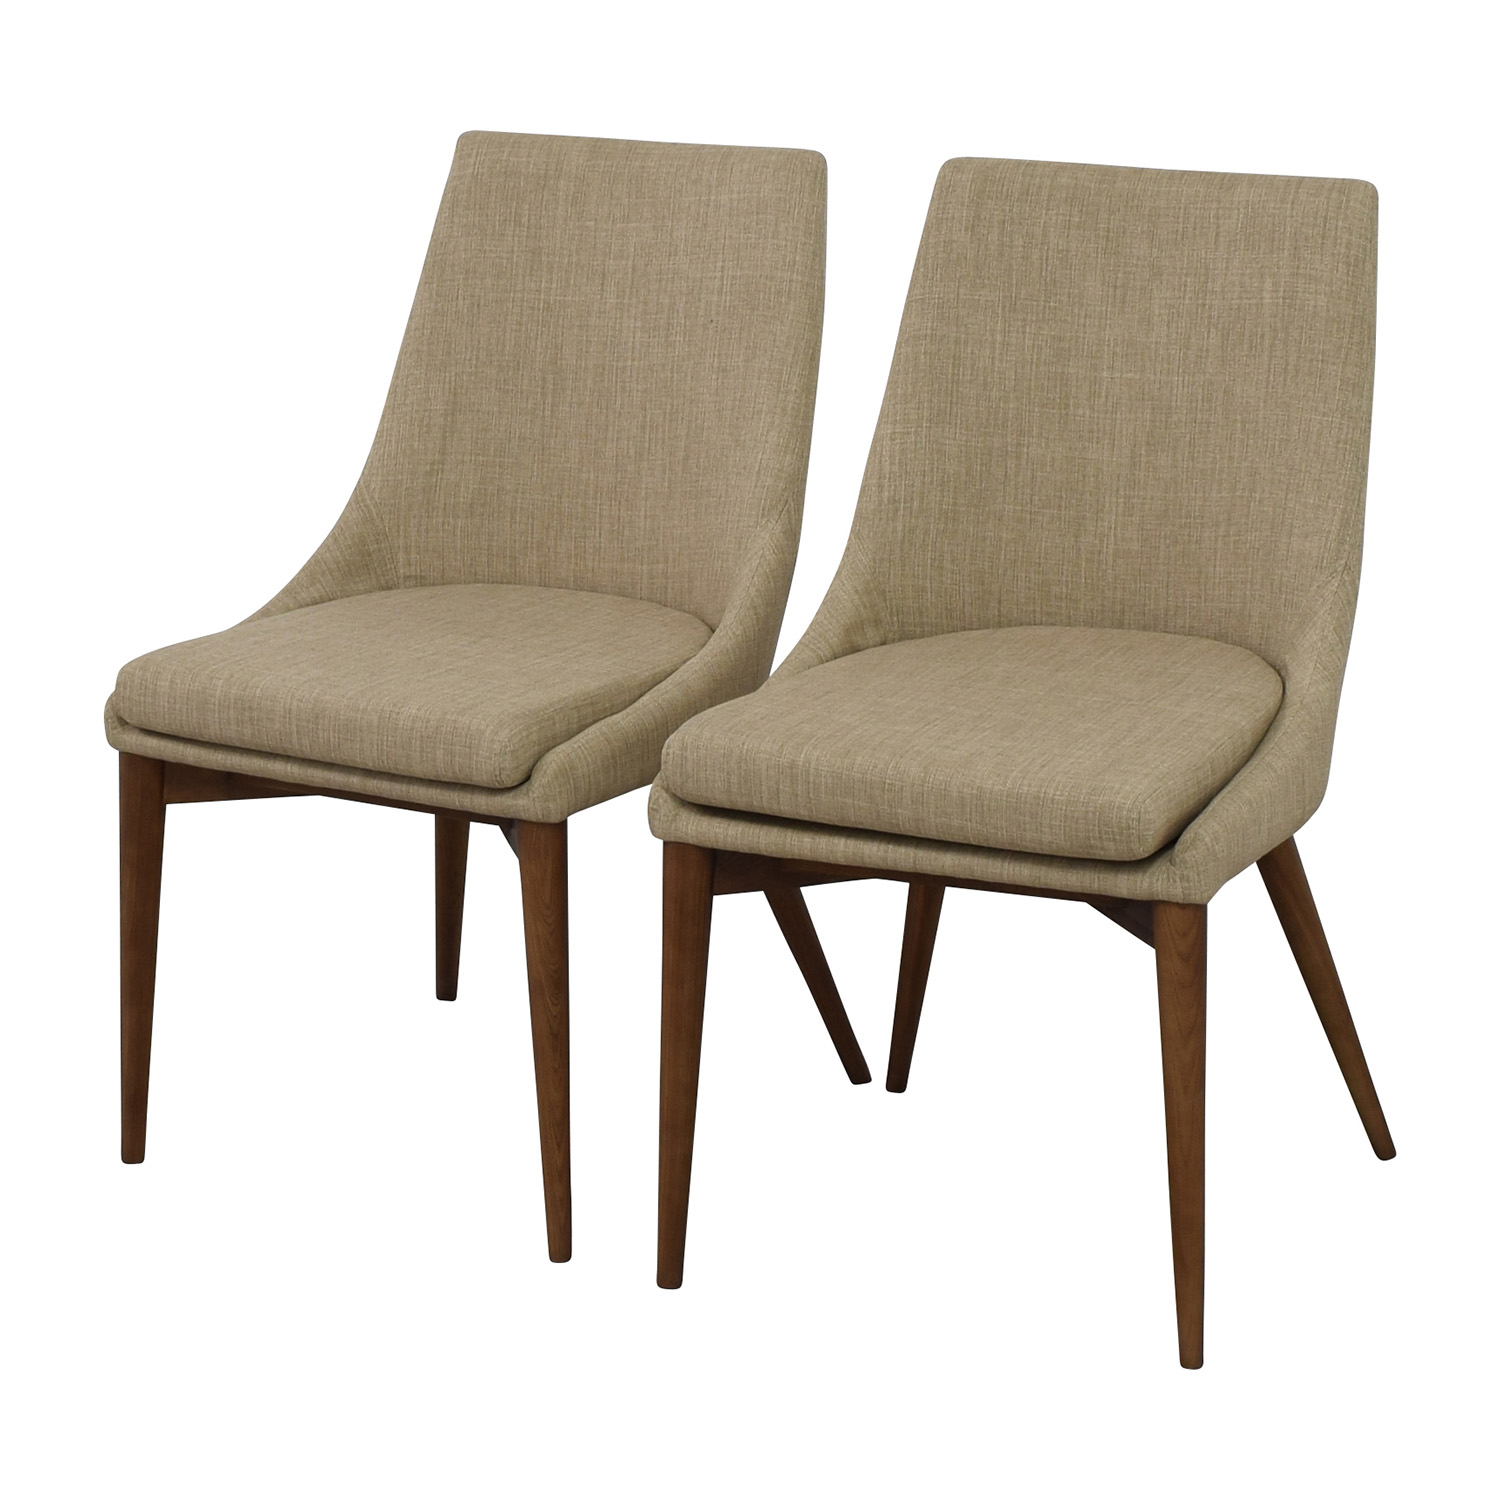 ... Buy InMod Beige Calais Side Chairs InMod Dining Chairs ...